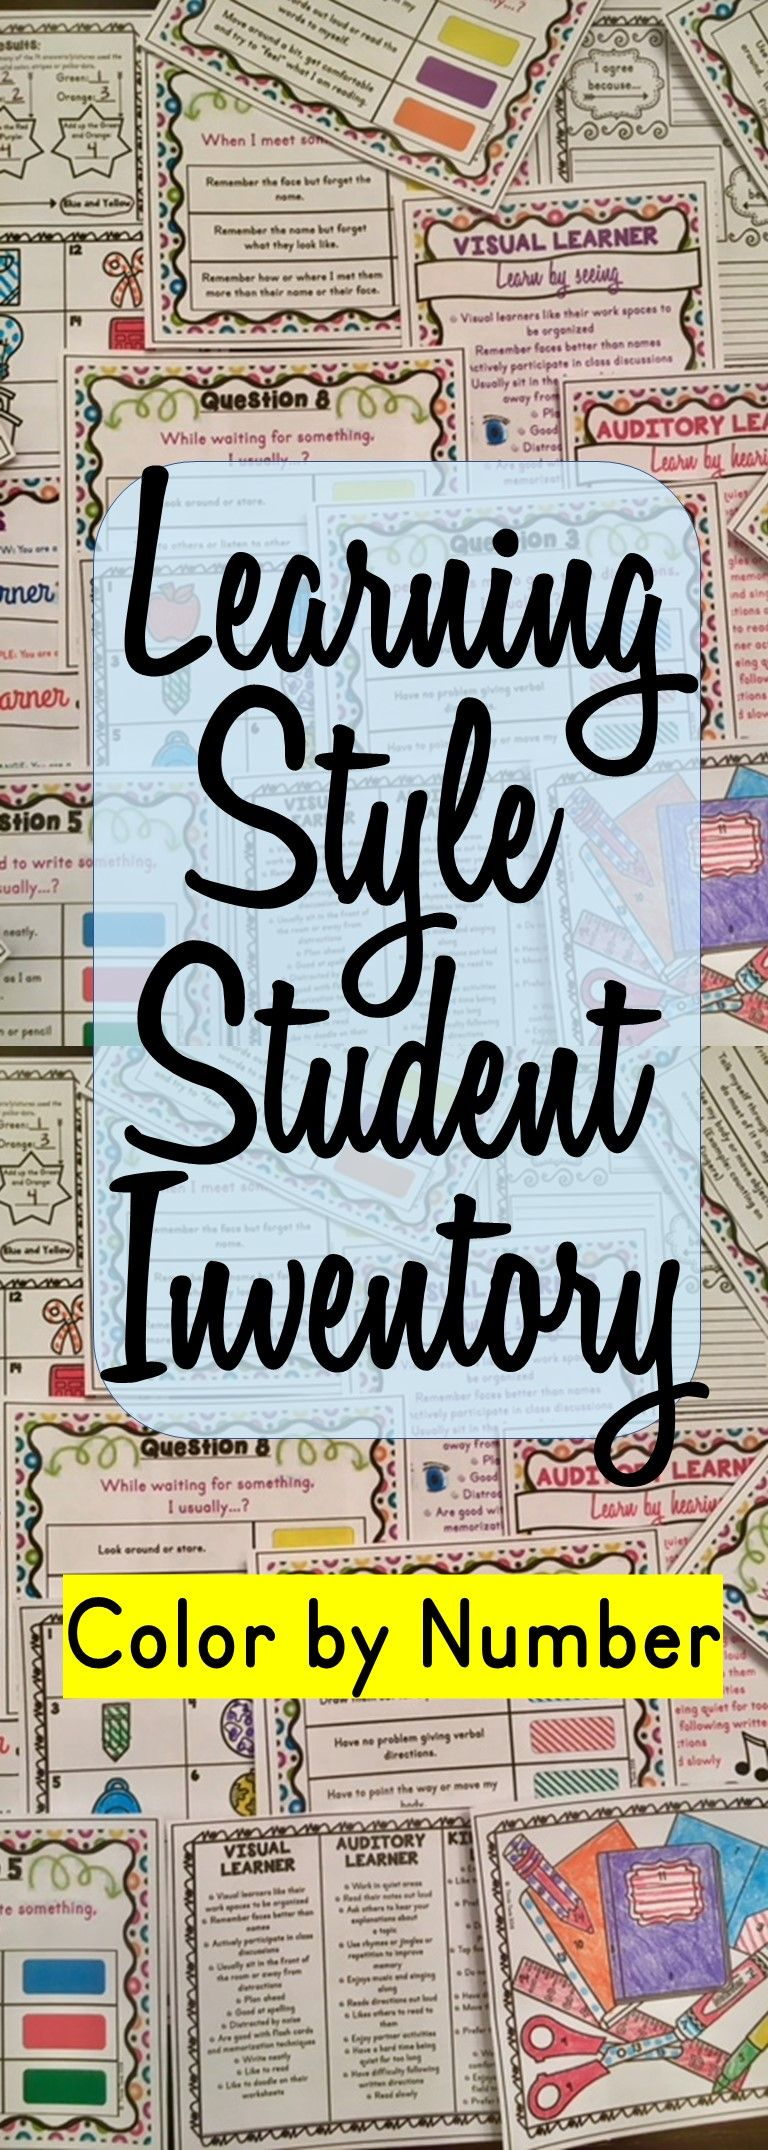 Learning Style Student Inventory : Color by Number - Back to School ...